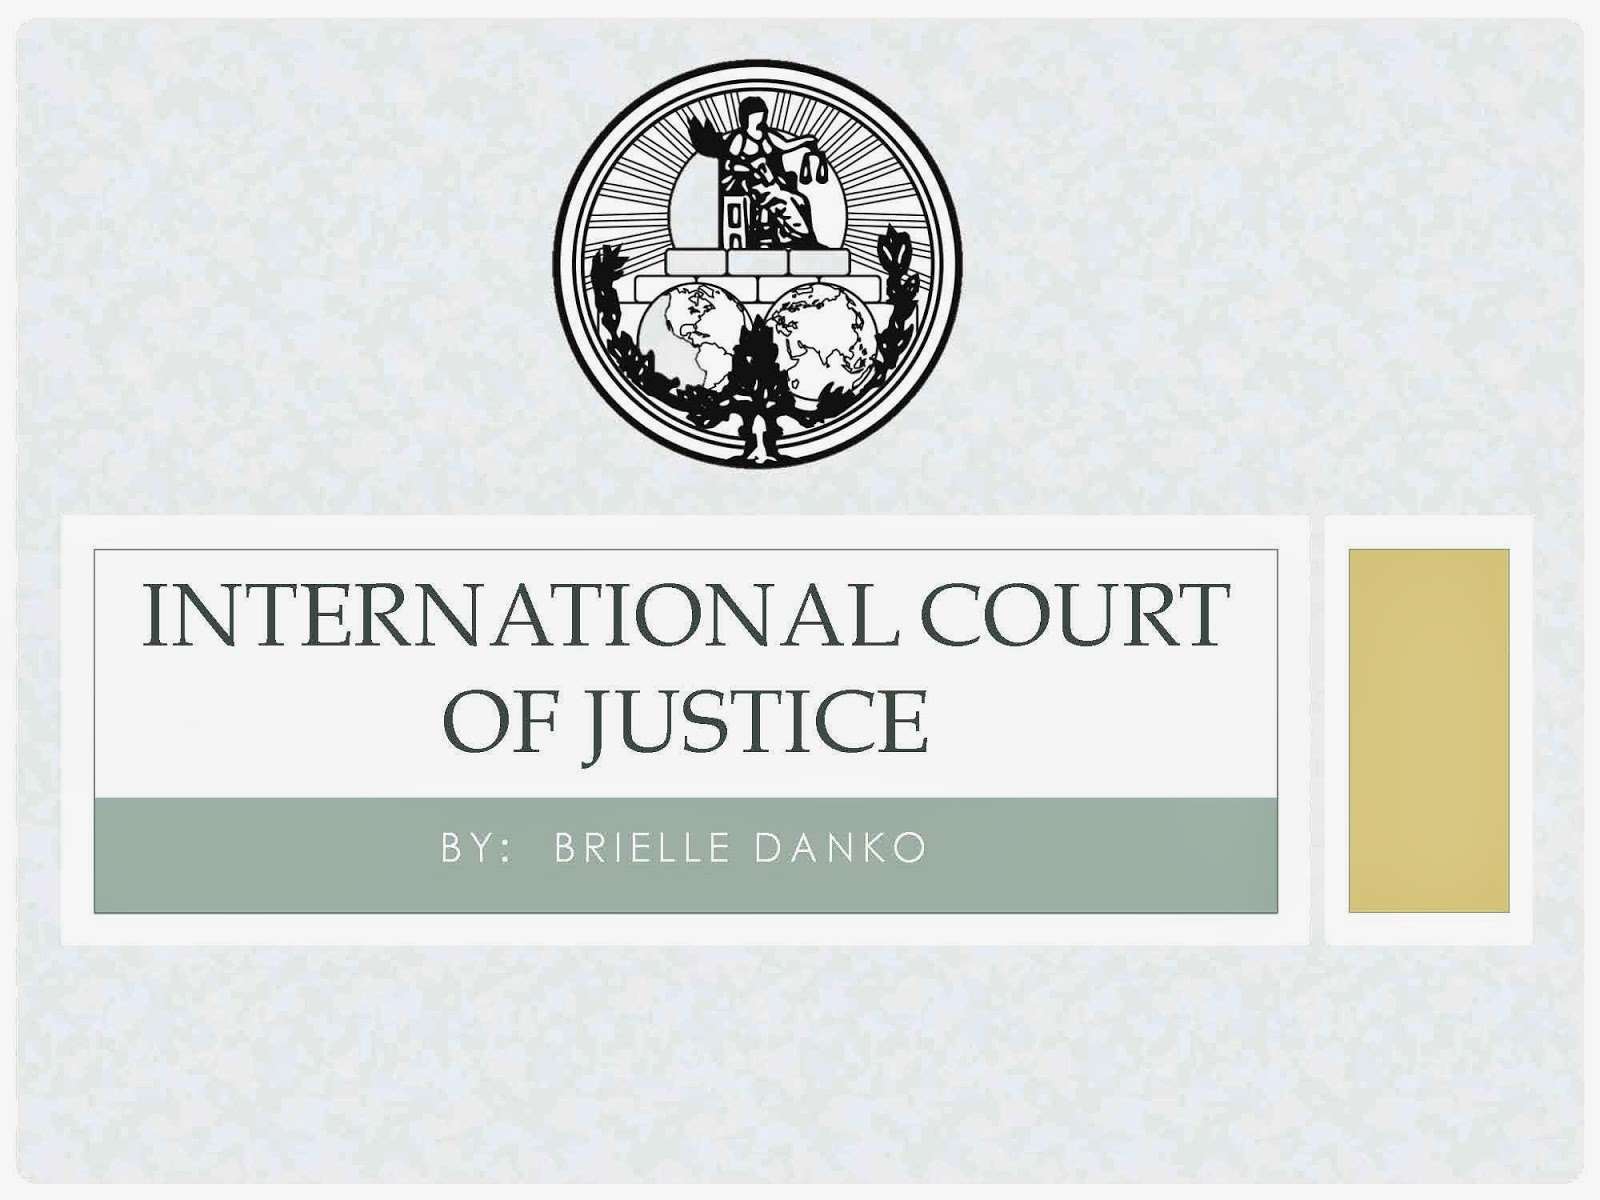 an analysis of the international court of justice Settling disputes between states international court of justice the principal judicial organ of the united nations is the international court of justice (icj) this main body of the un.